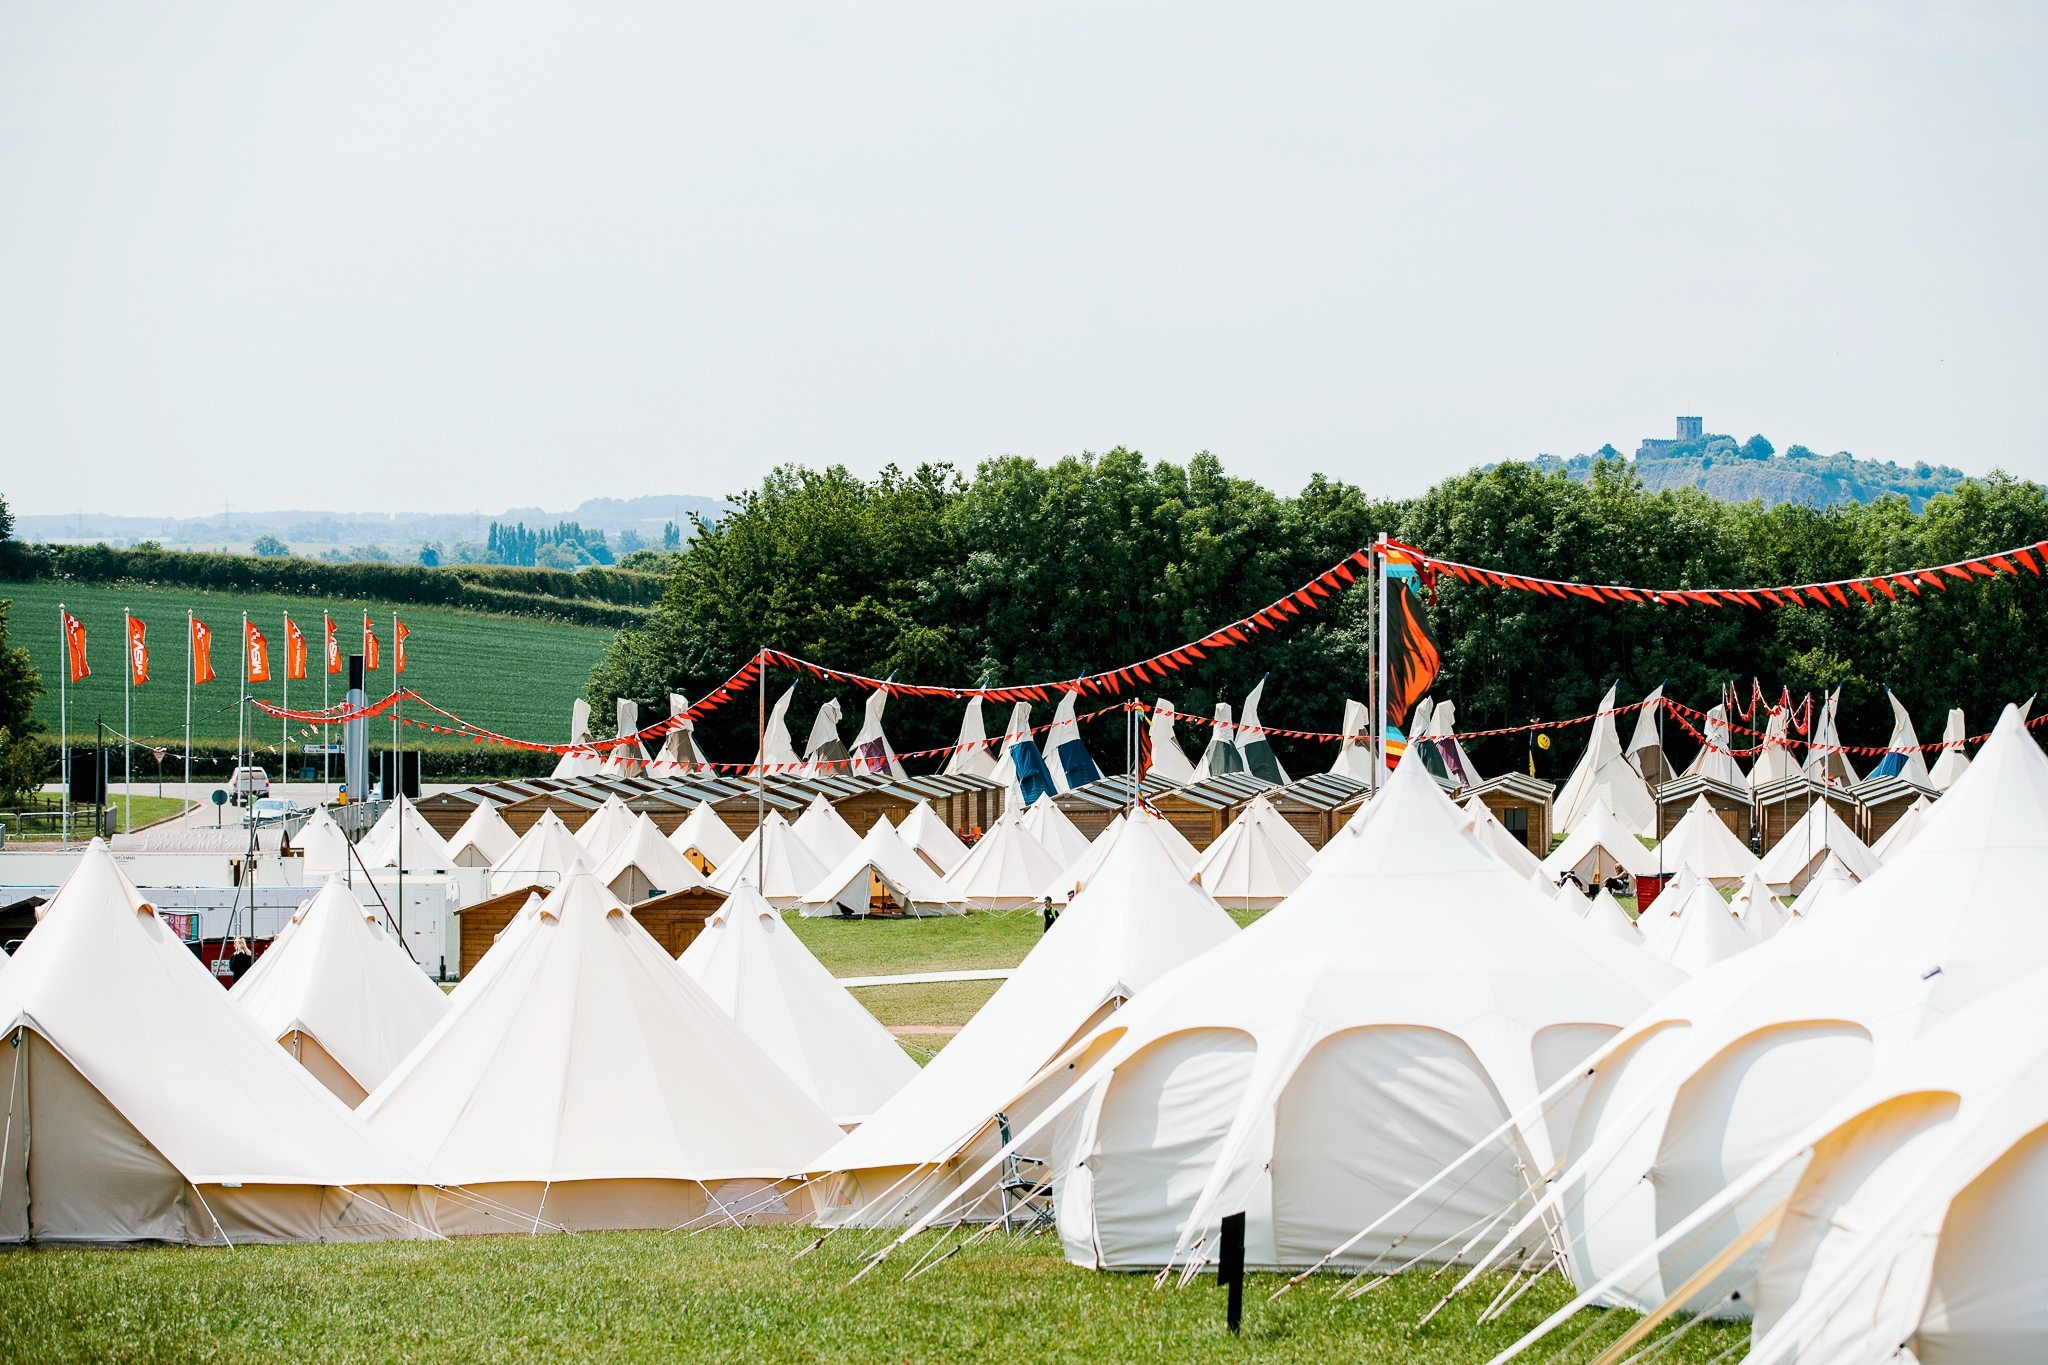 RIP Bell Tents